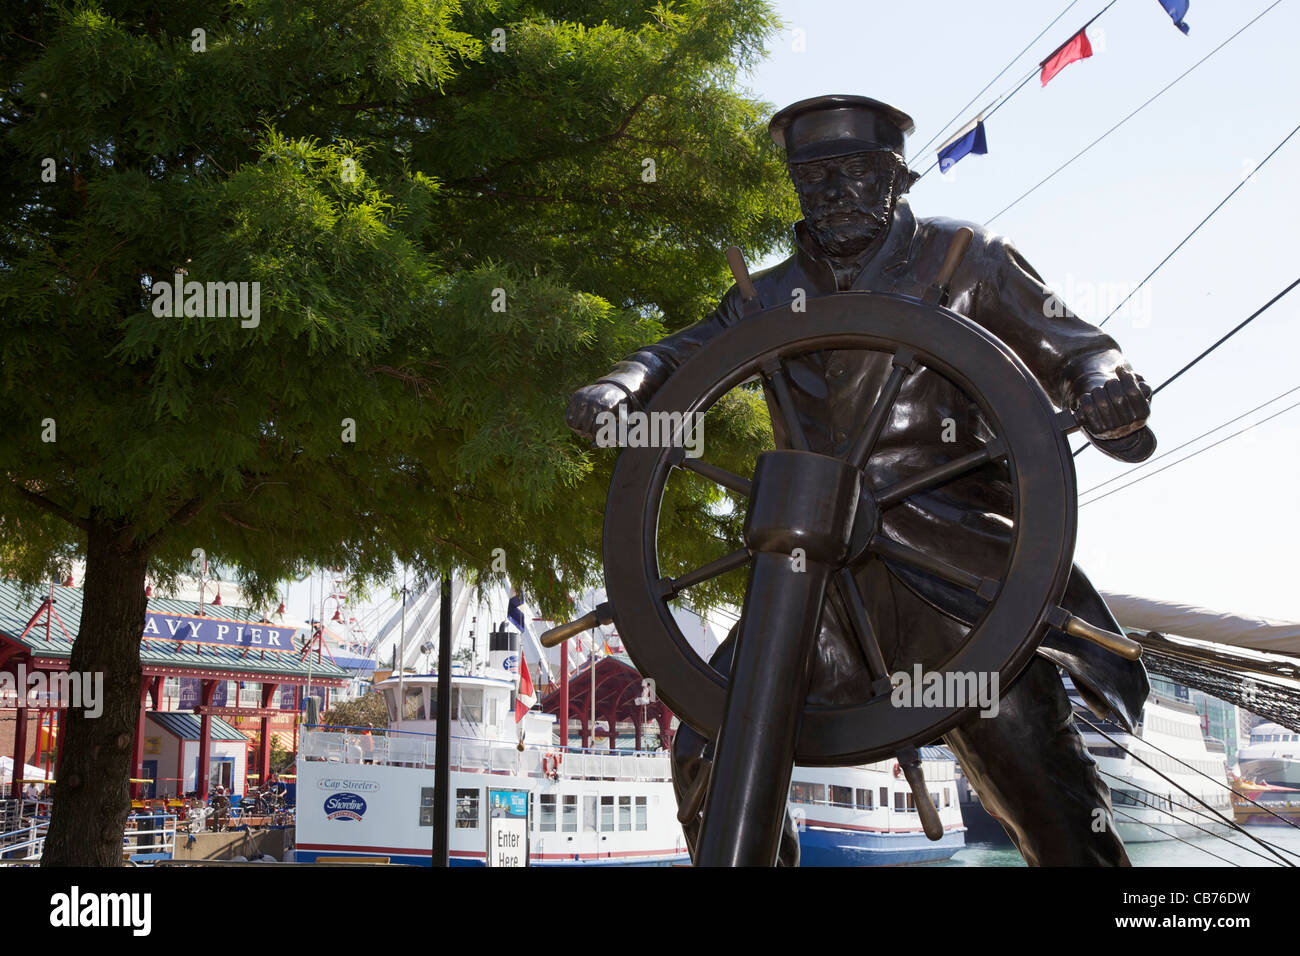 Sea captain statue. Navy Pier, Chicago, Illinois - Stock Image